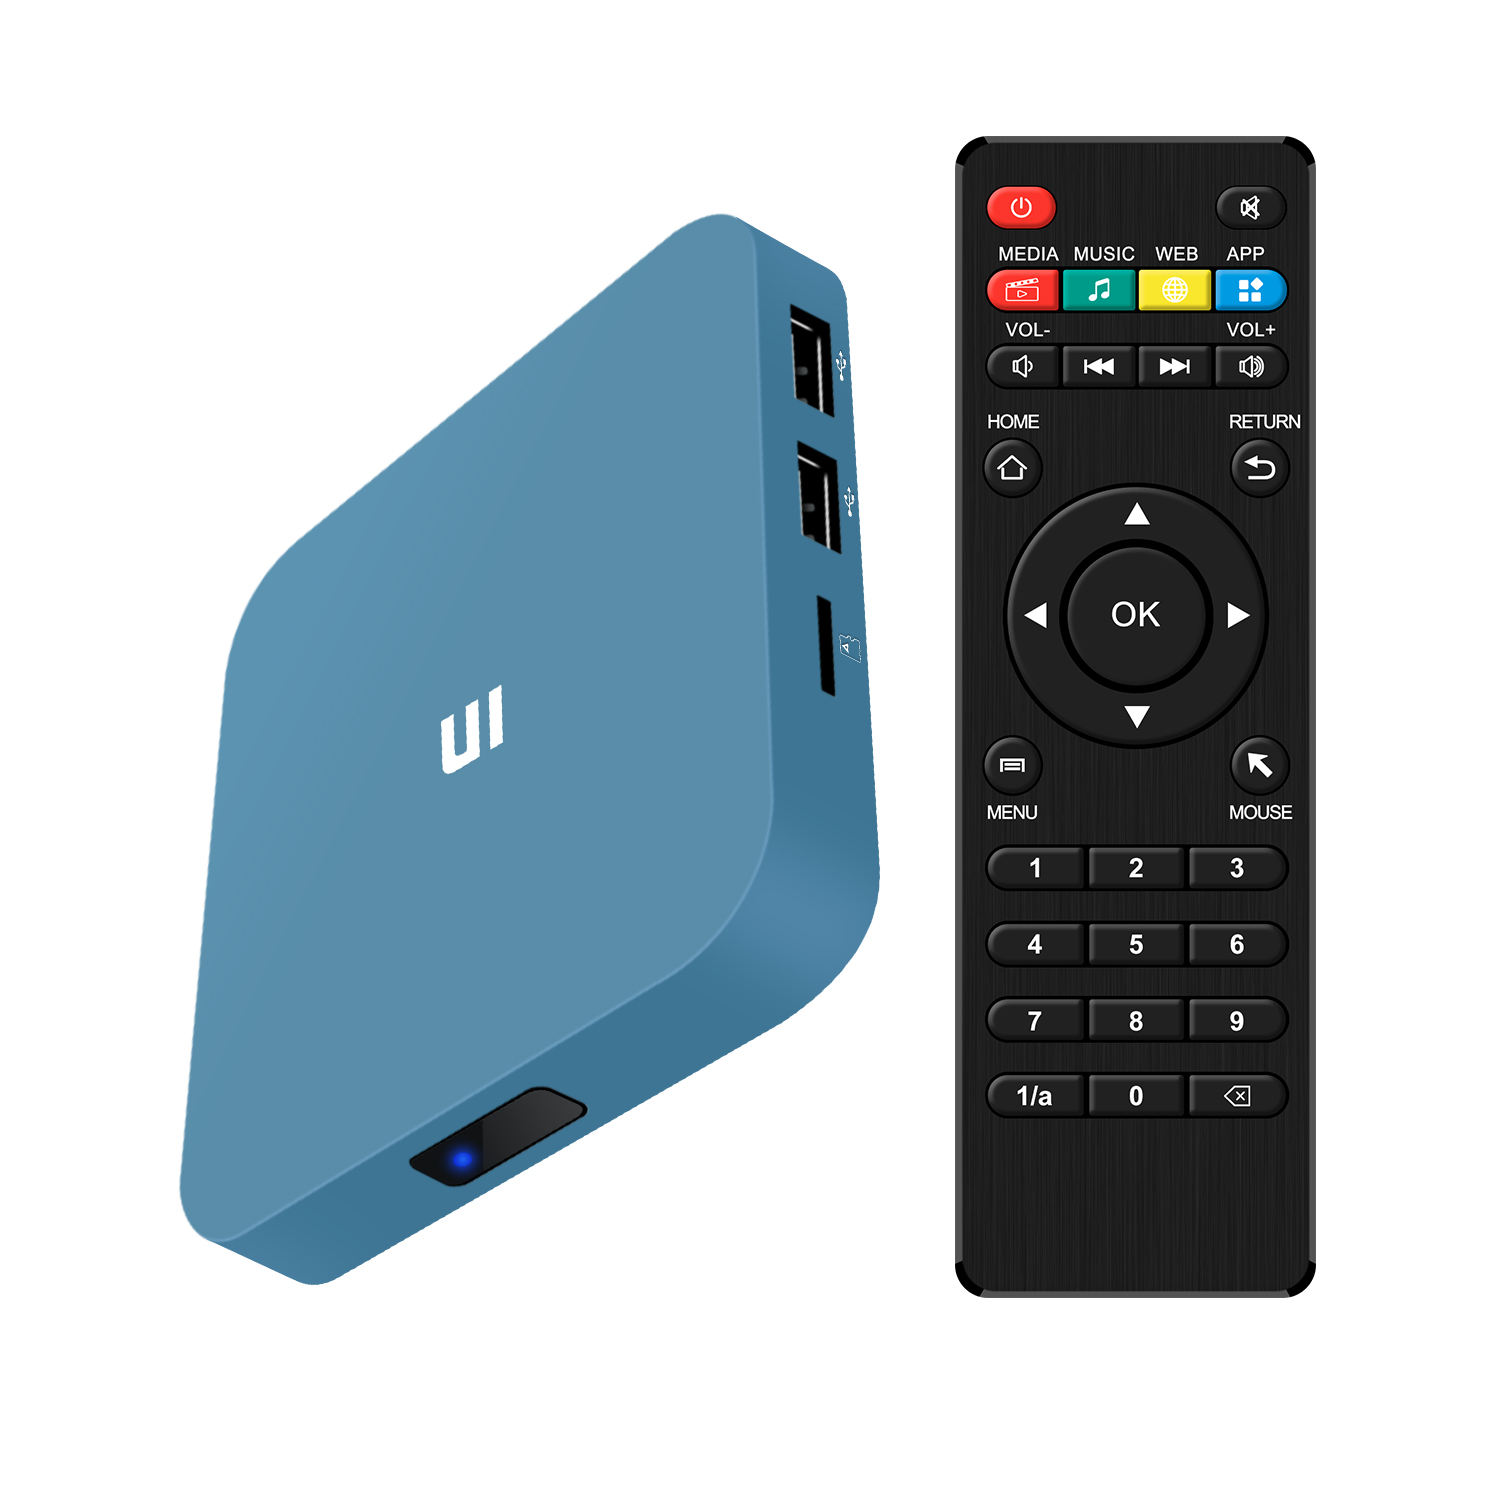 Cheapest Rk3229 2Gb Ram 16Gb Rom Quad Core Android tv box 9.1 4K Original Kodi Ott Smart Tv Box support iptv